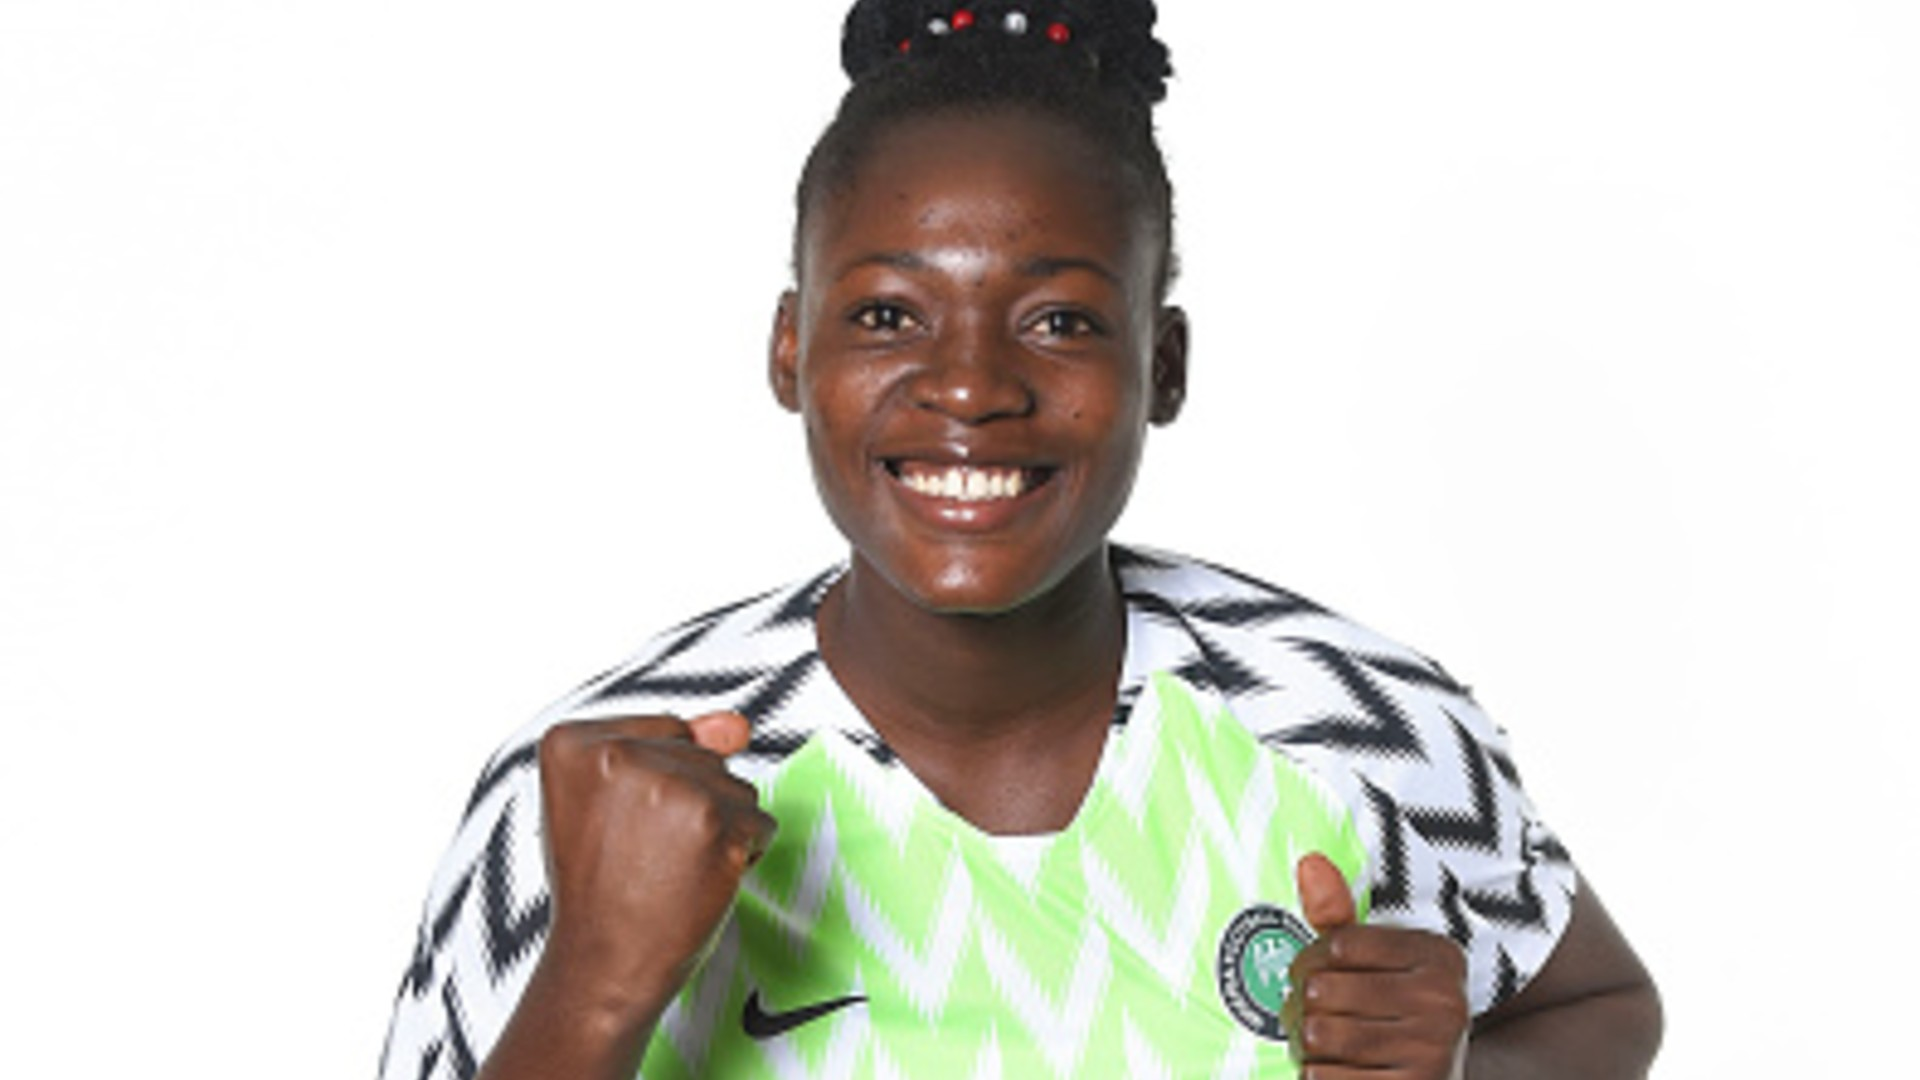 'She's a good signing' - Faith Micheal backs Anam Imo to excel at Pitea